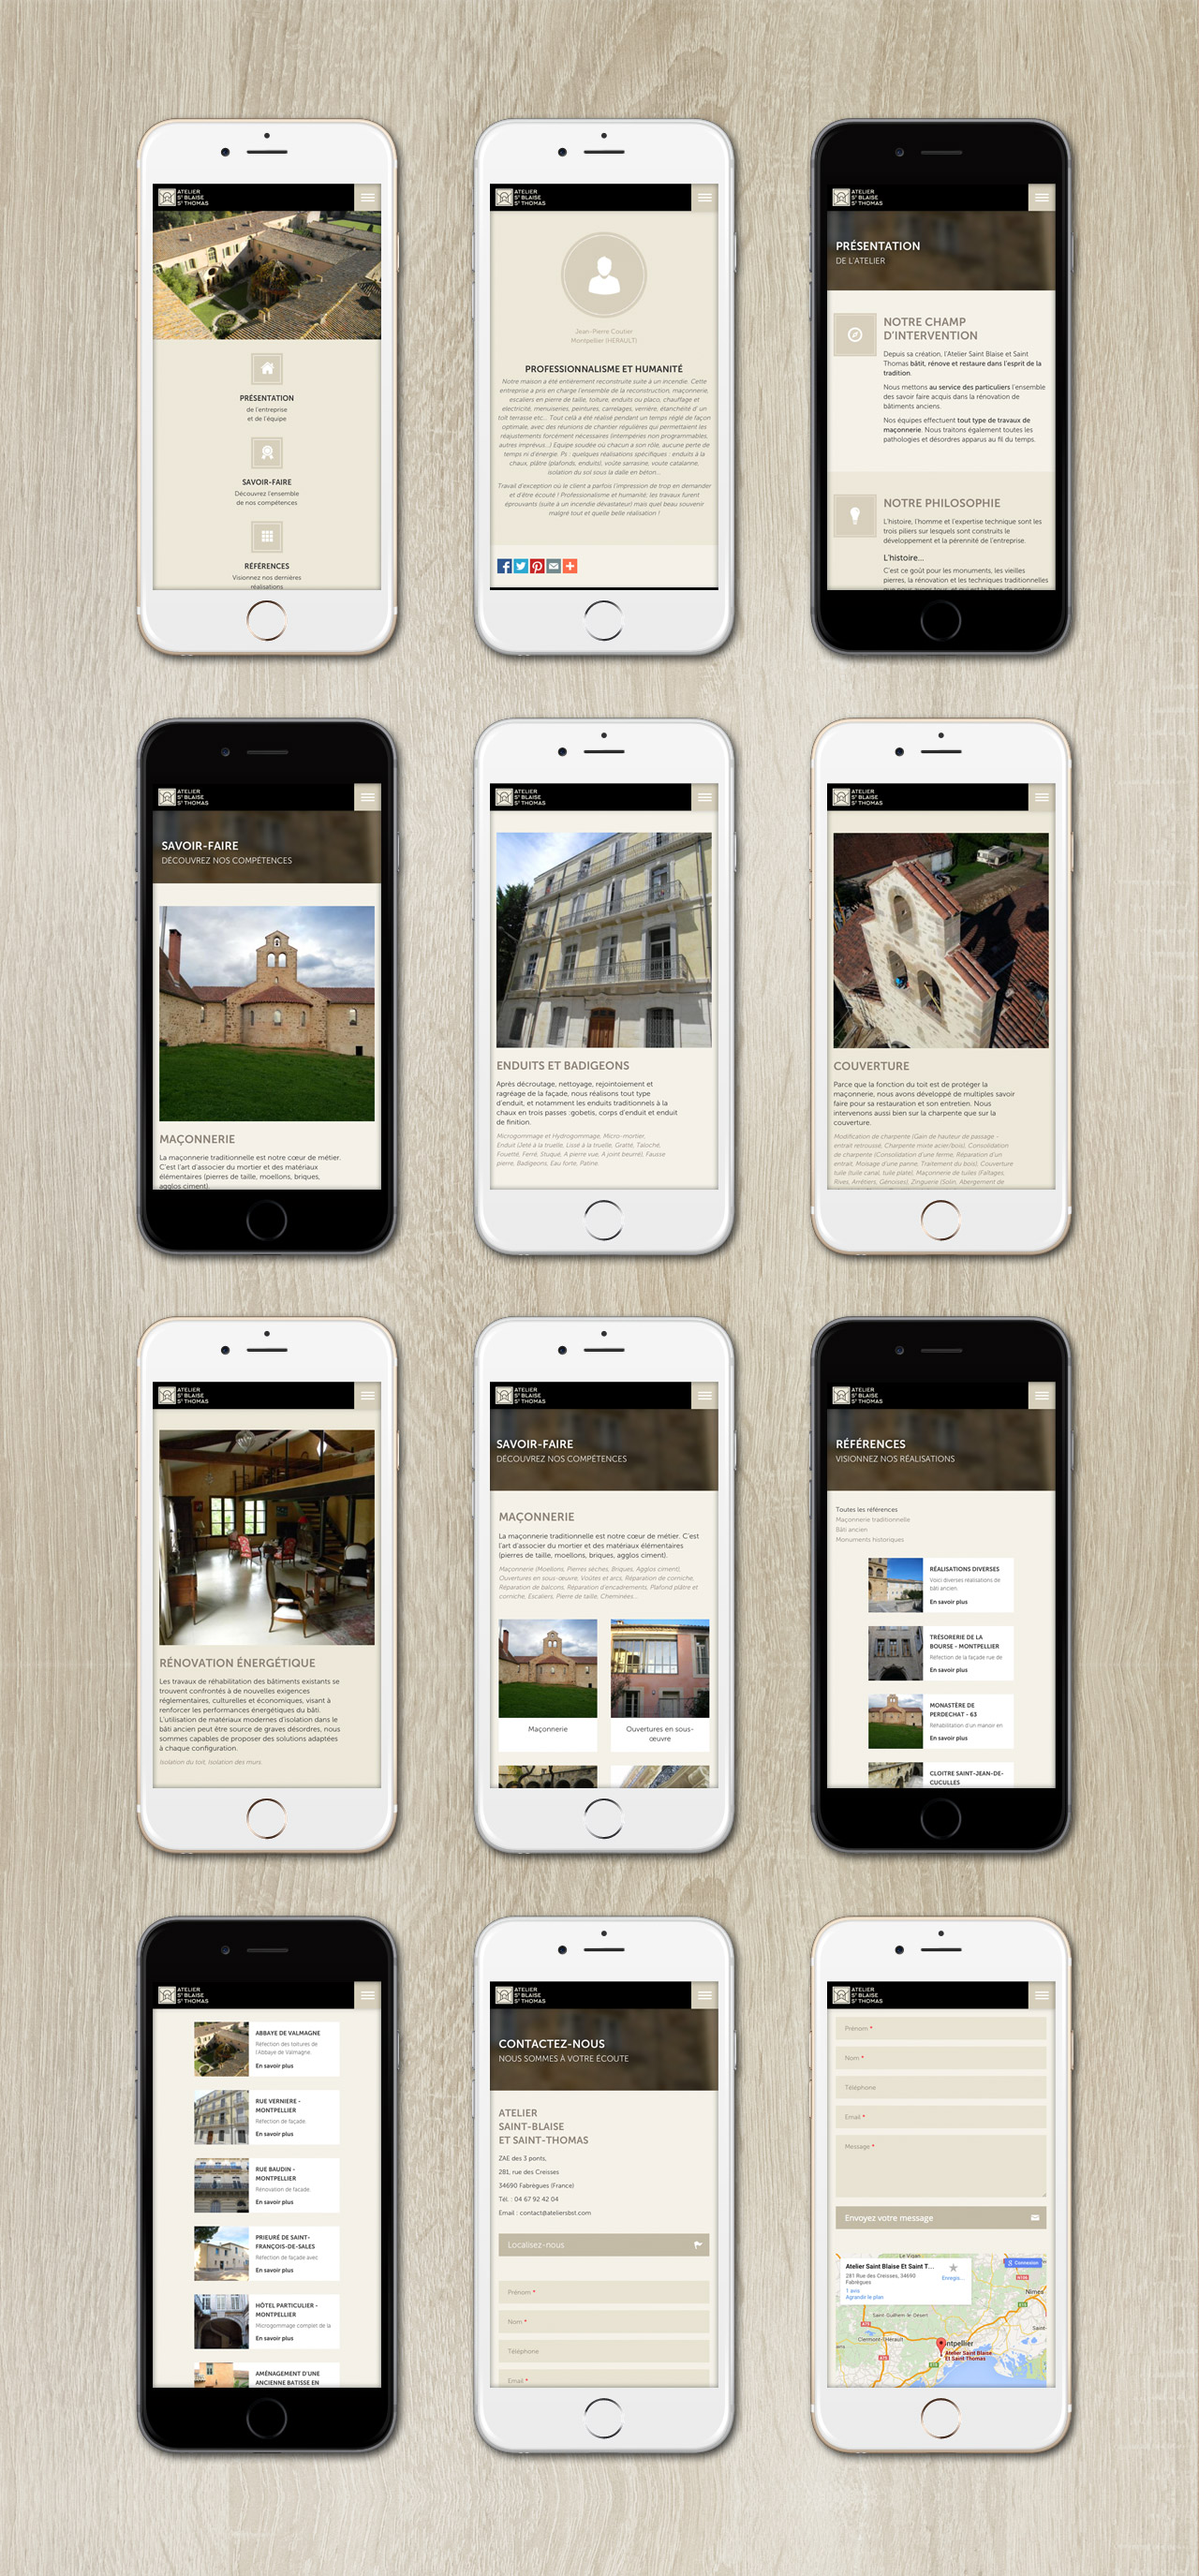 atelier-sbst-creation-site-responsive-design-mobile-hemerastudio-alexis-cretin-graphiste